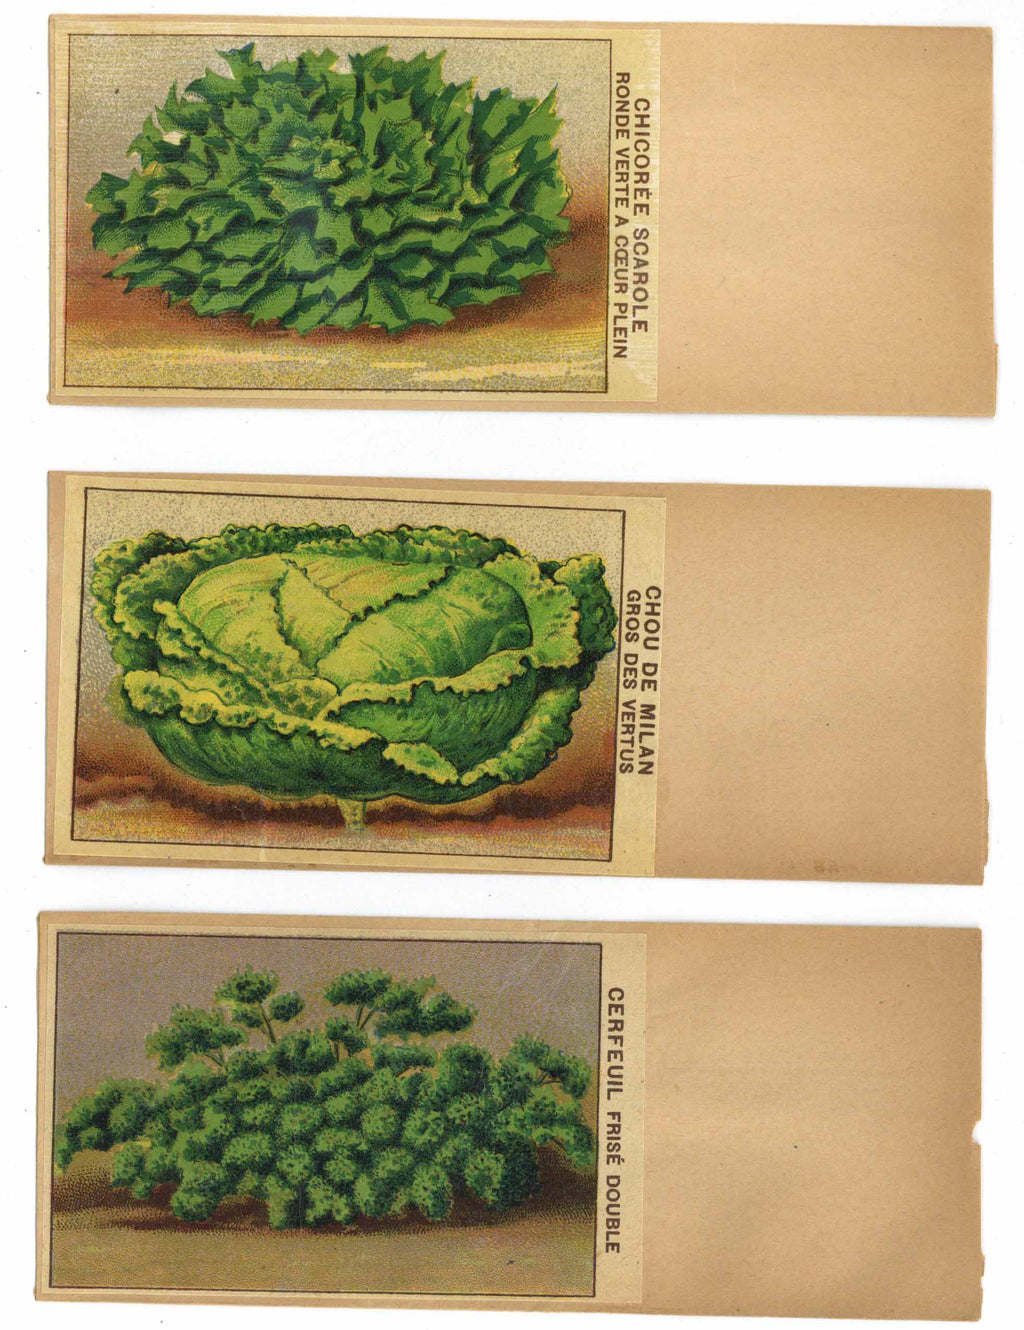 French Vegetable Antique Seed Packet Collection #15